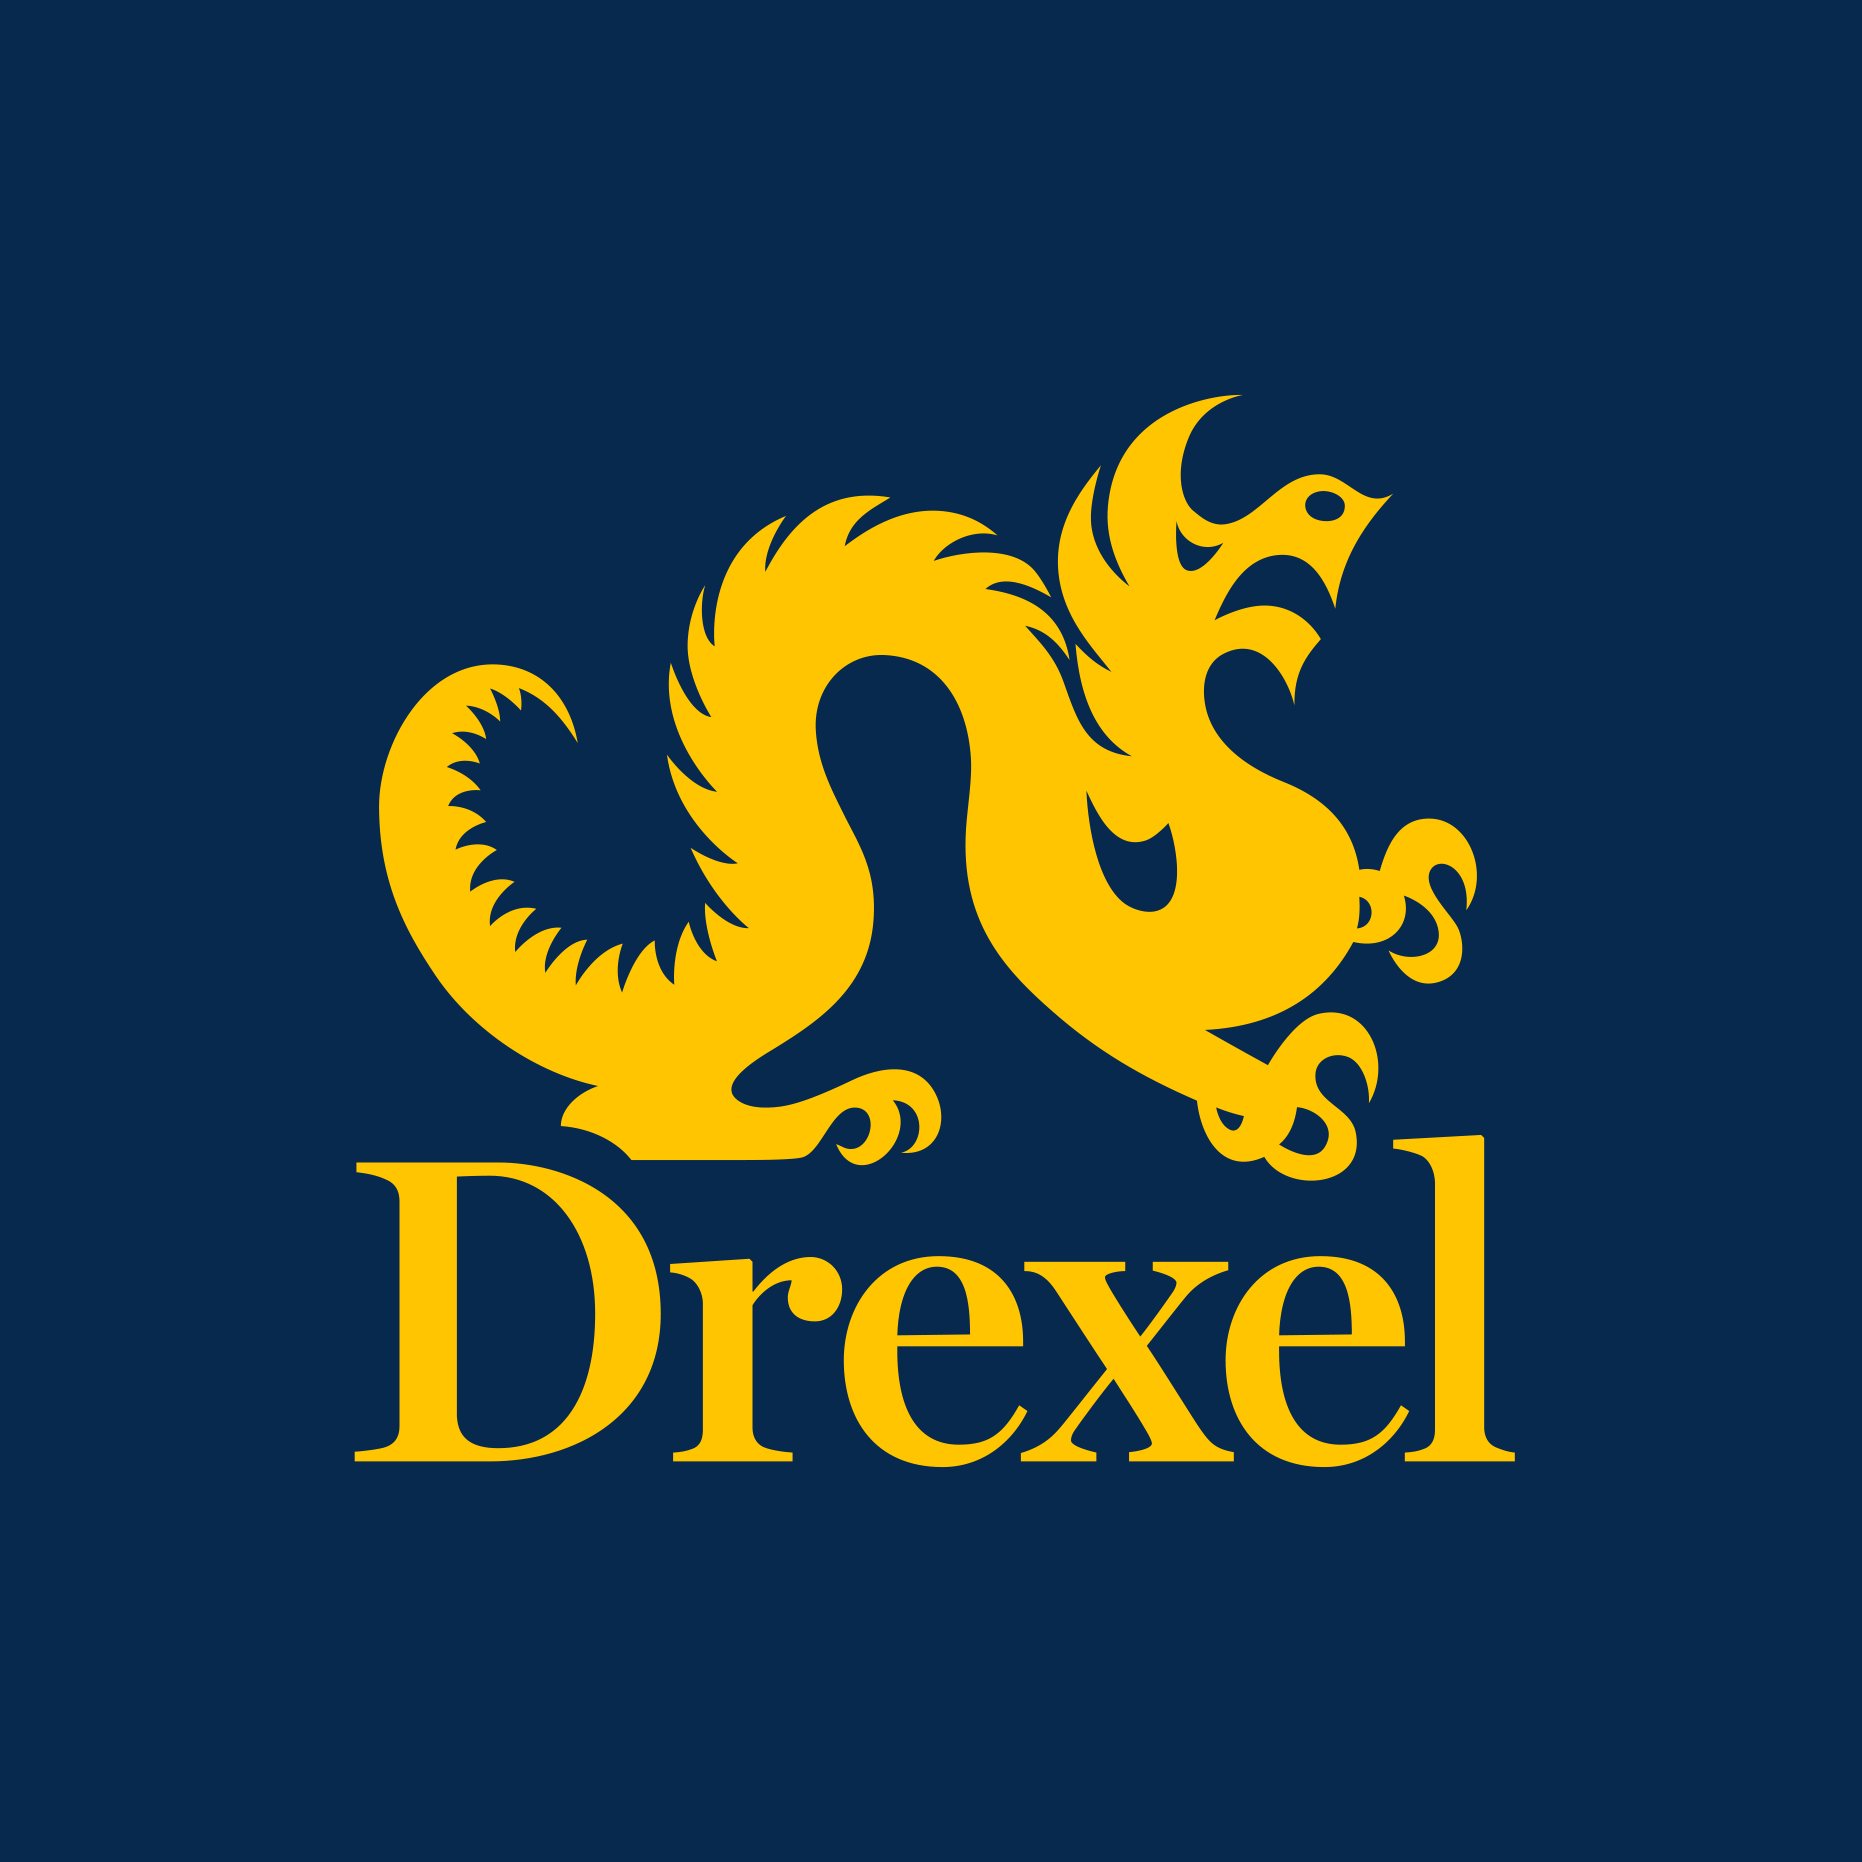 Drexel logo for twitter - blue background